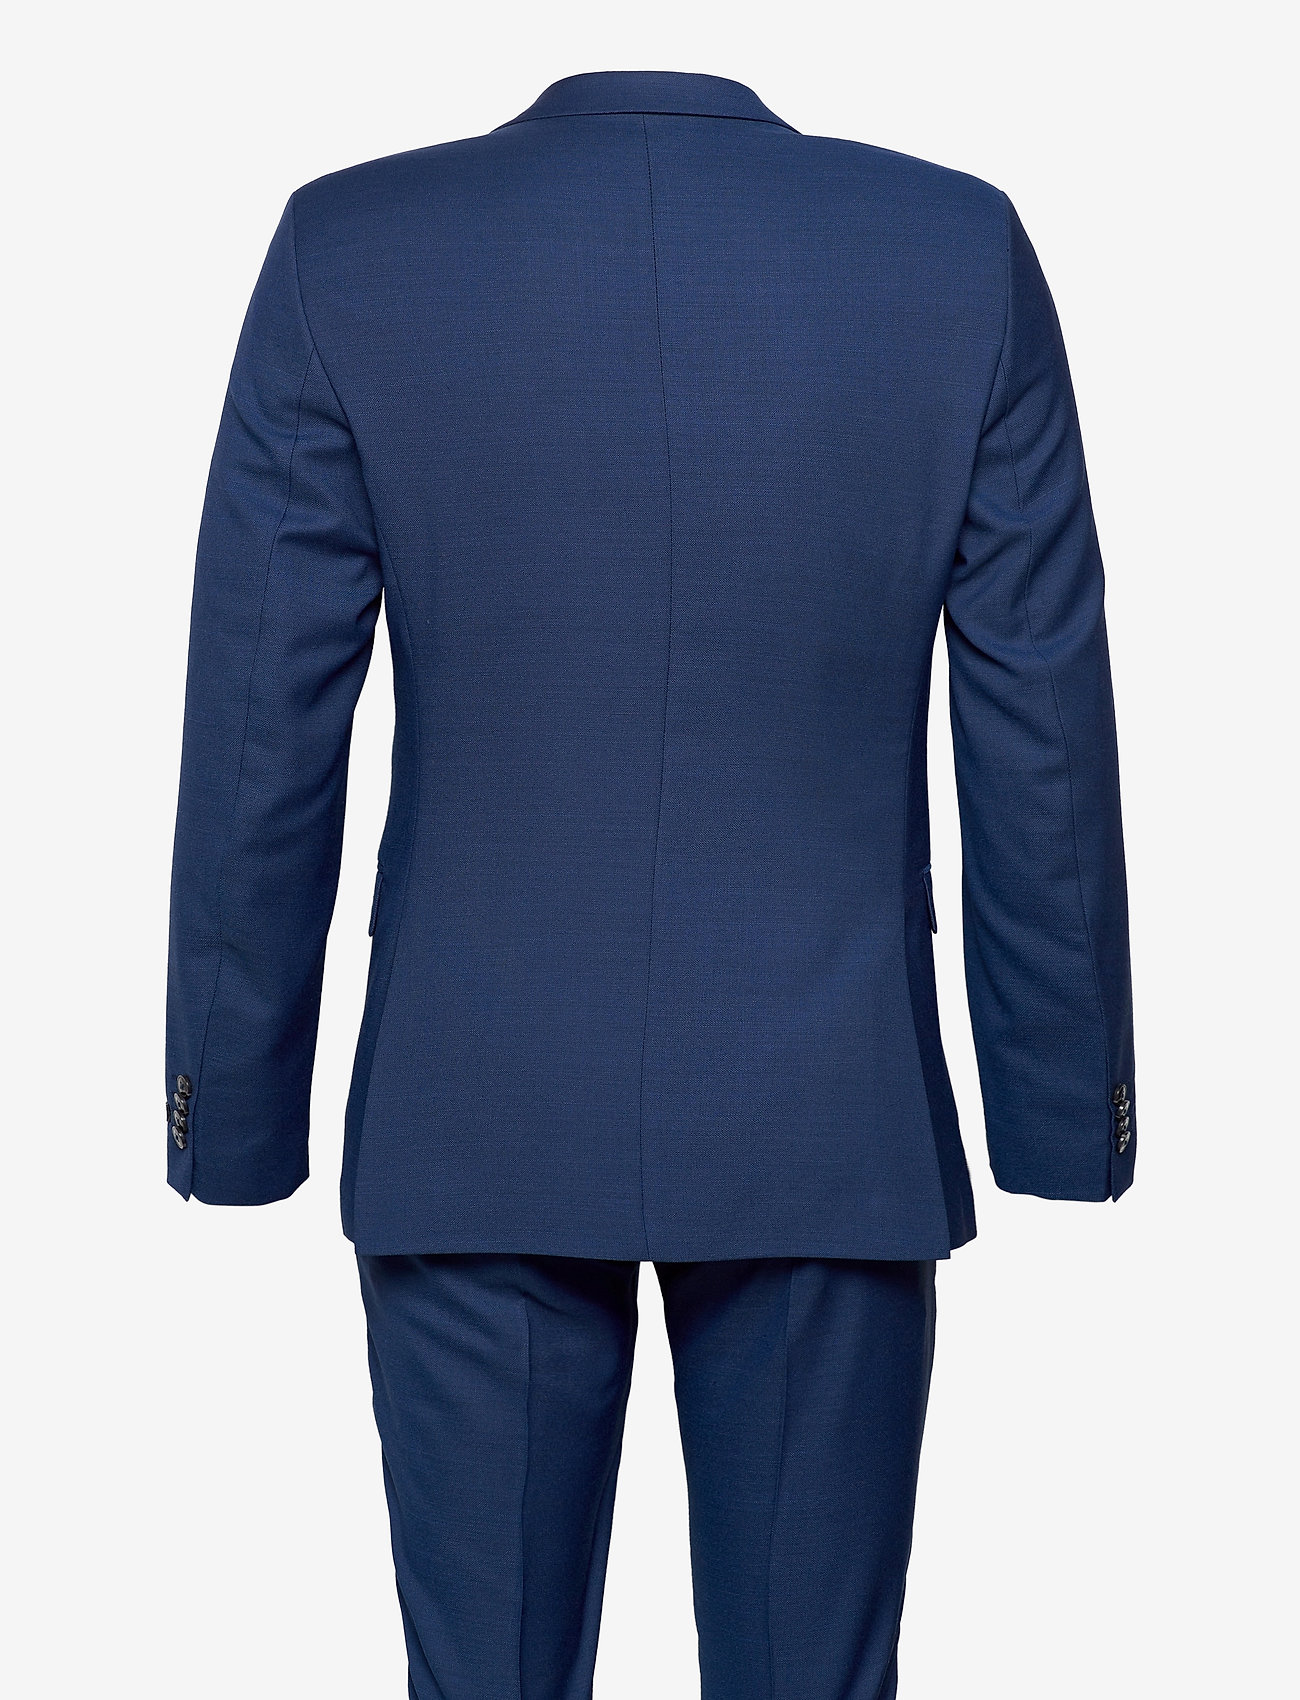 Jack & Jones - JPRSOLARIS SUIT - suits - medieval blue - 1